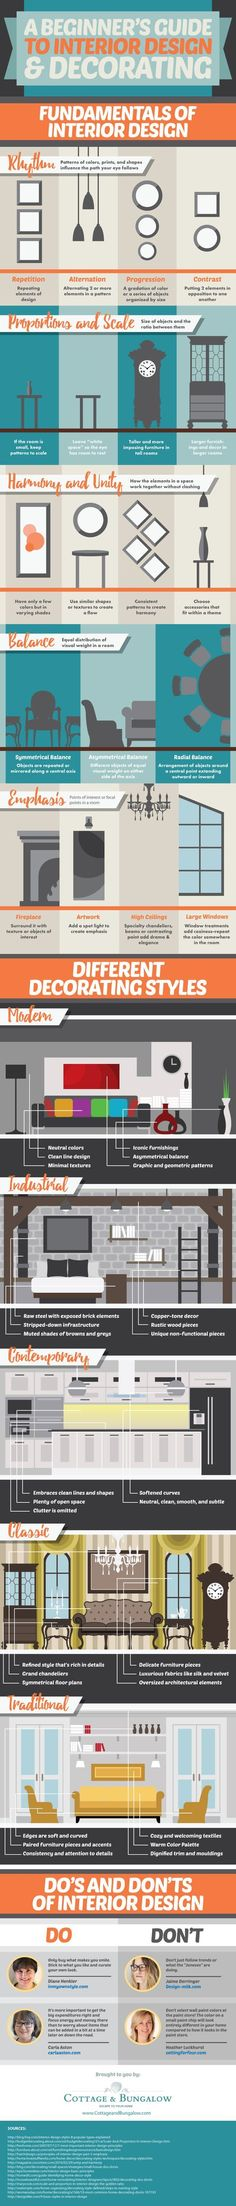 These 9 home decor charts are SO GOOD! I'm so glad I found this! These have seriously helped me redecorate my rooms and make them look AWESOME! So pinning this!